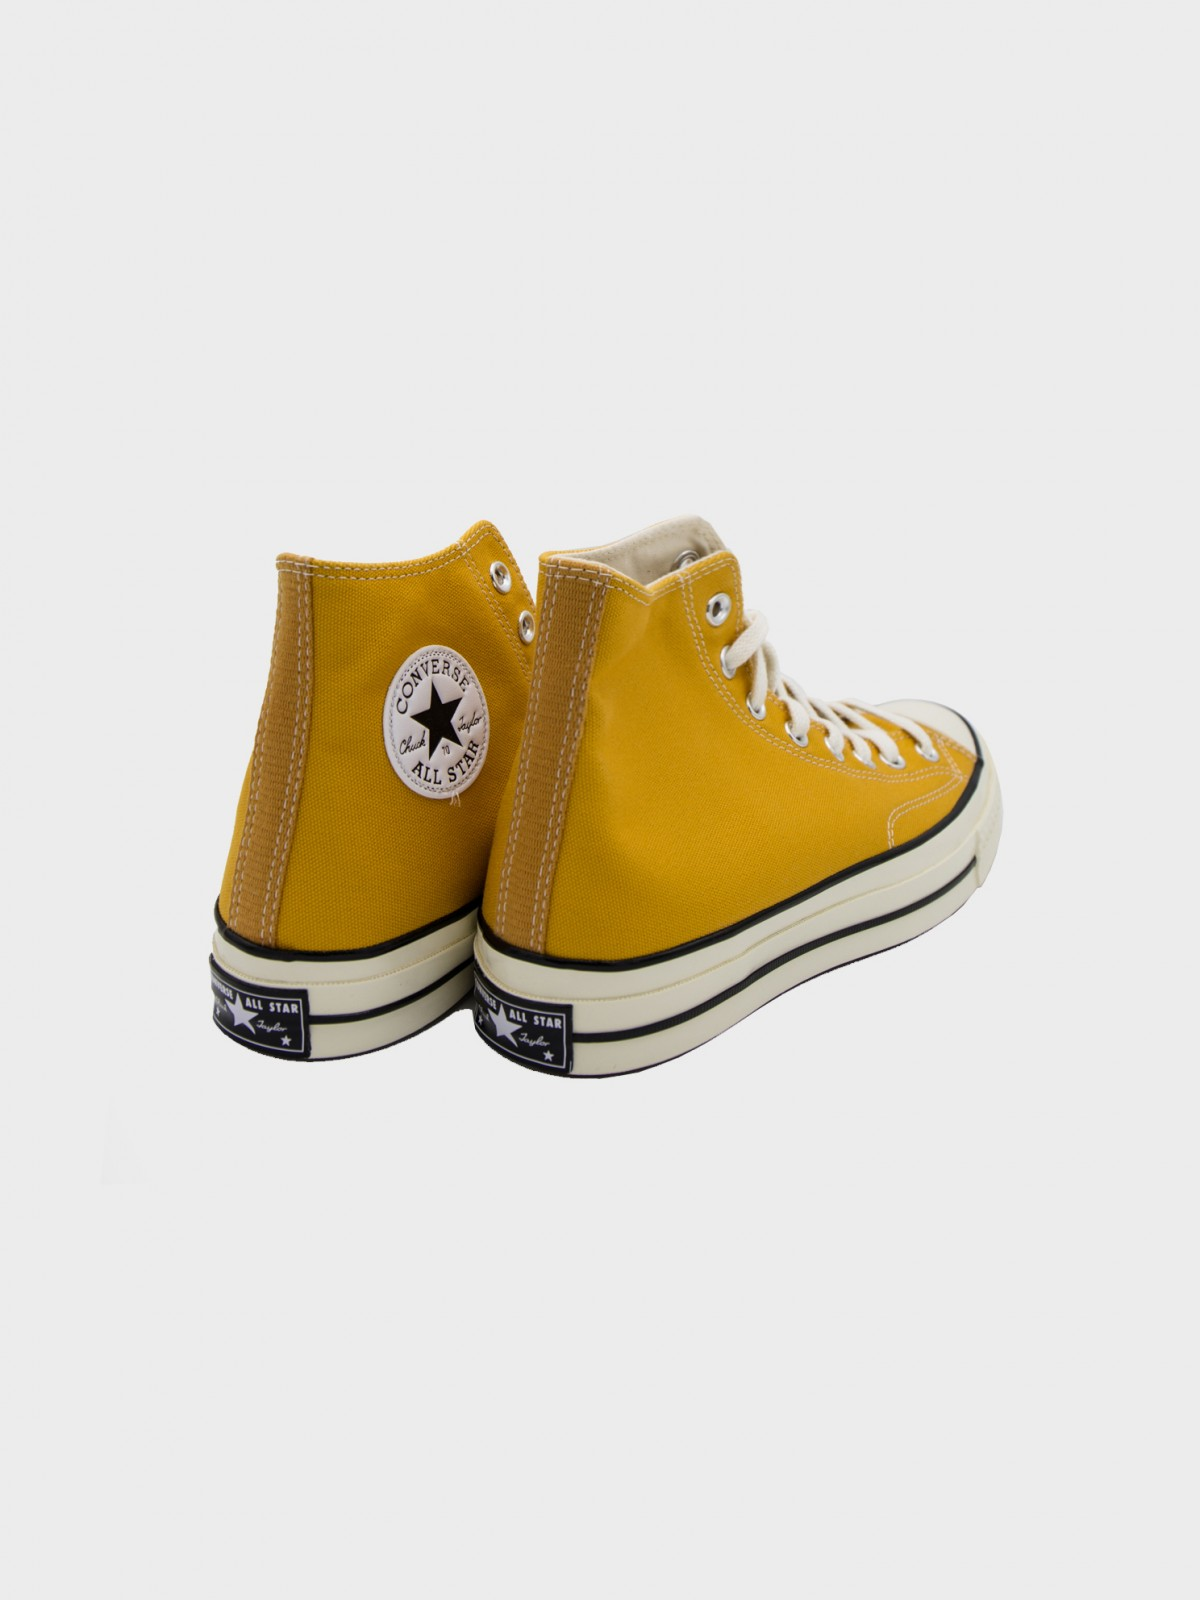 Converse Chuck Taylor High All Star '70 in Sunflower